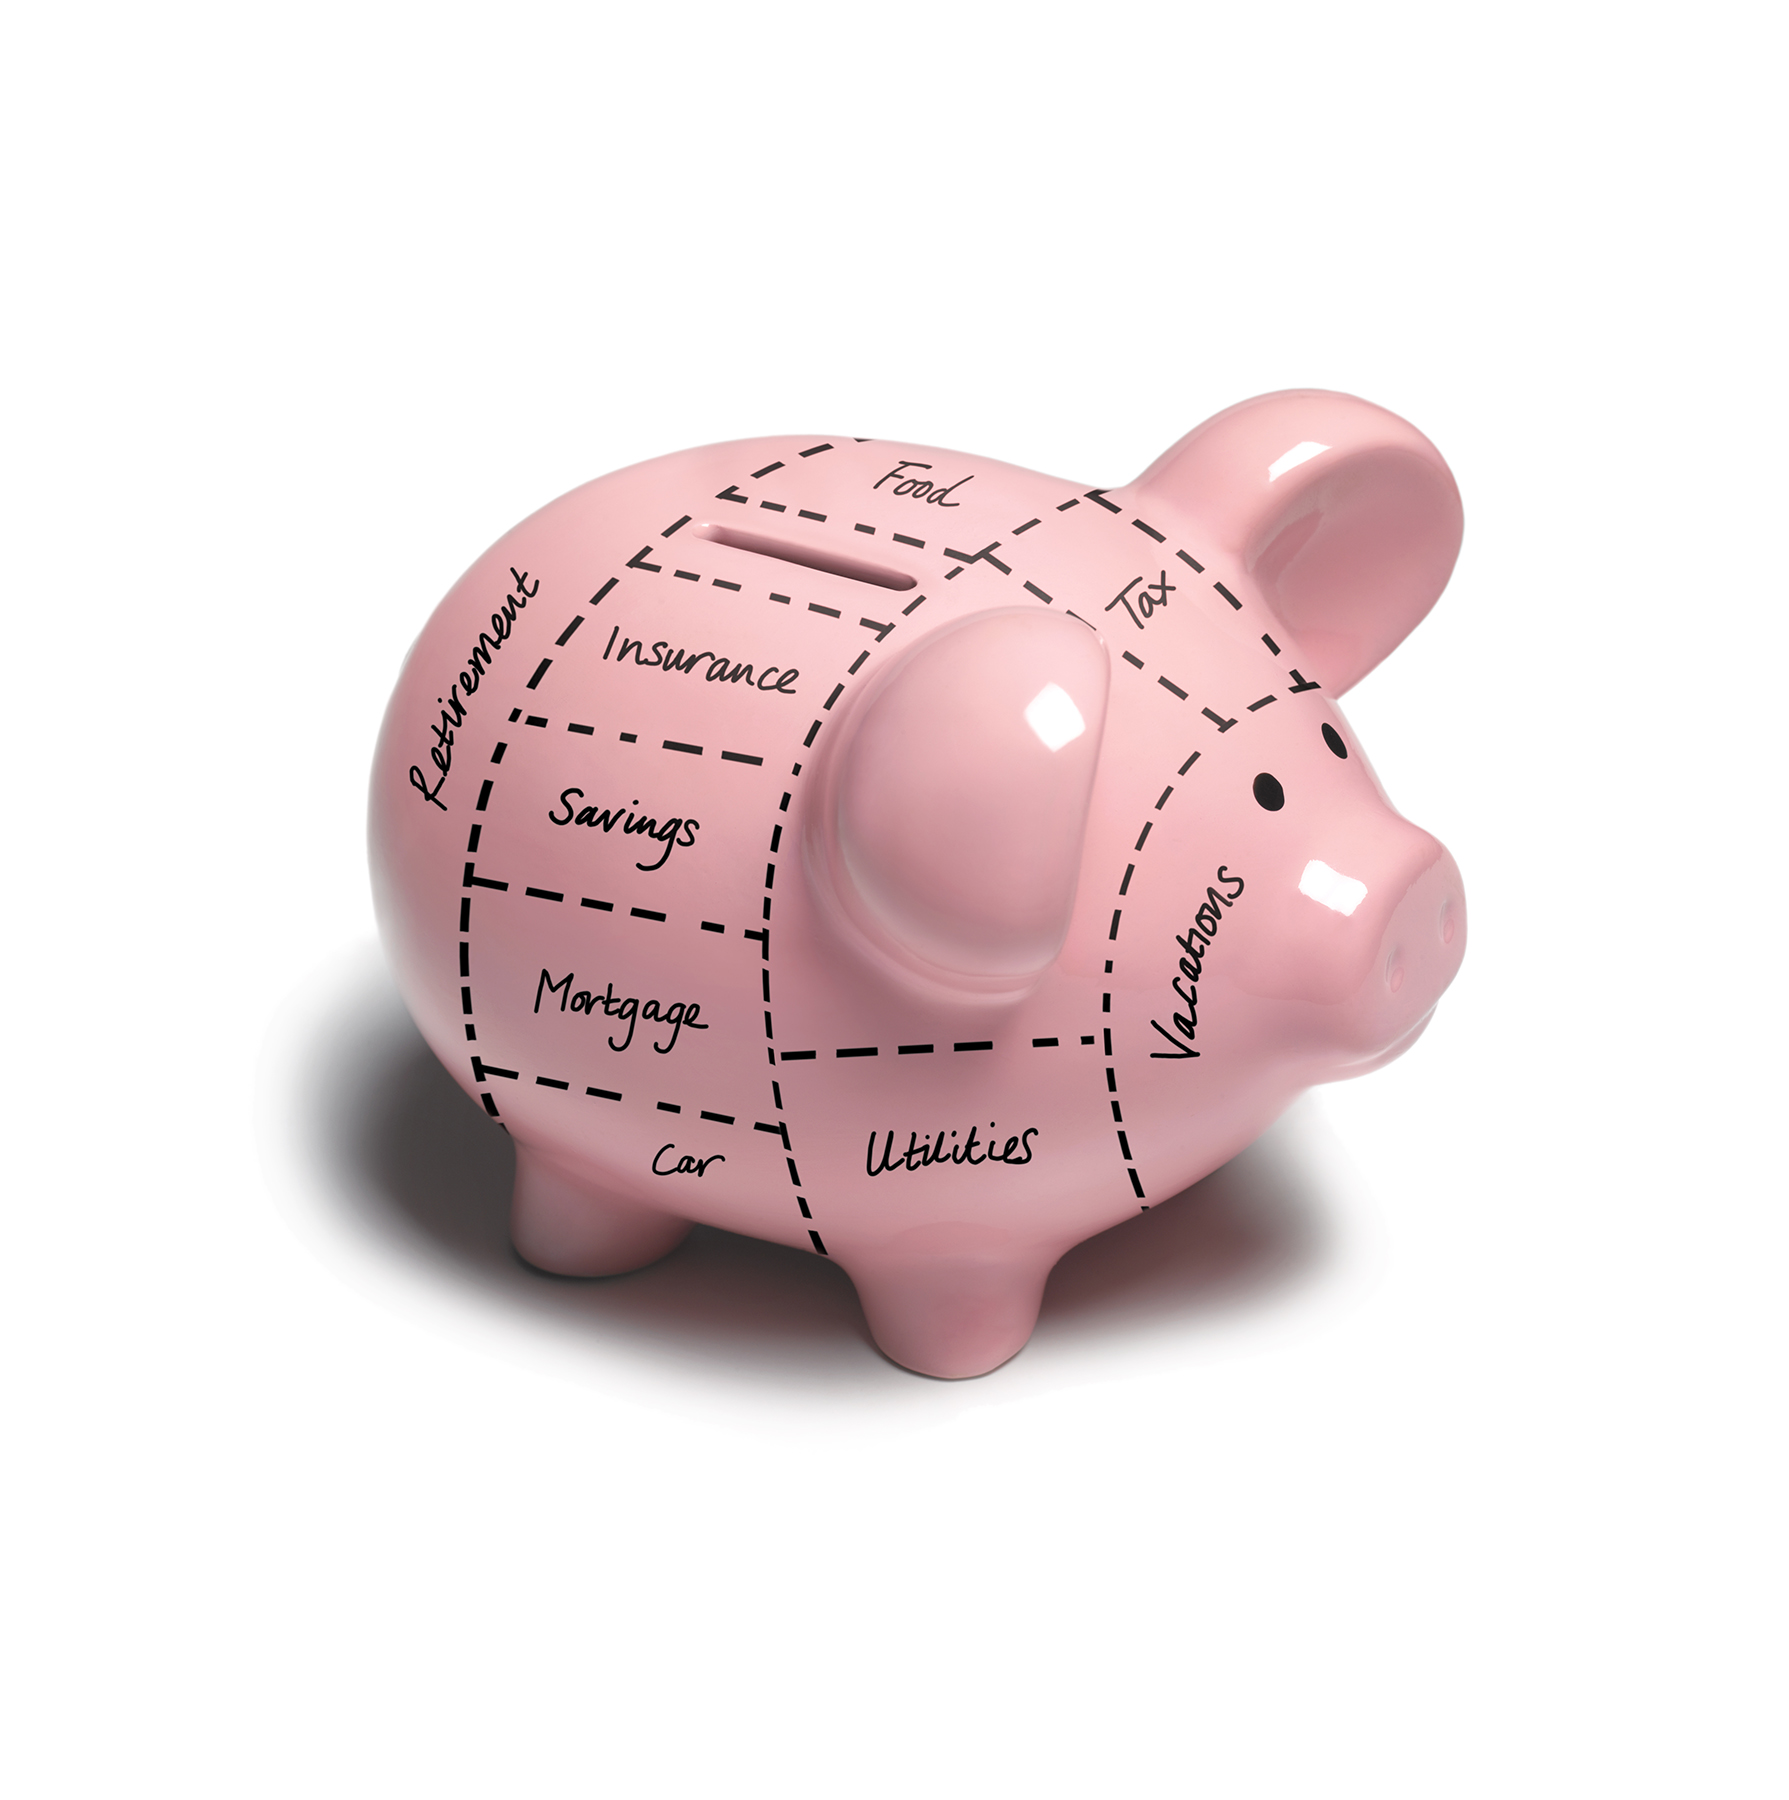 Piggy bank with designated expenses